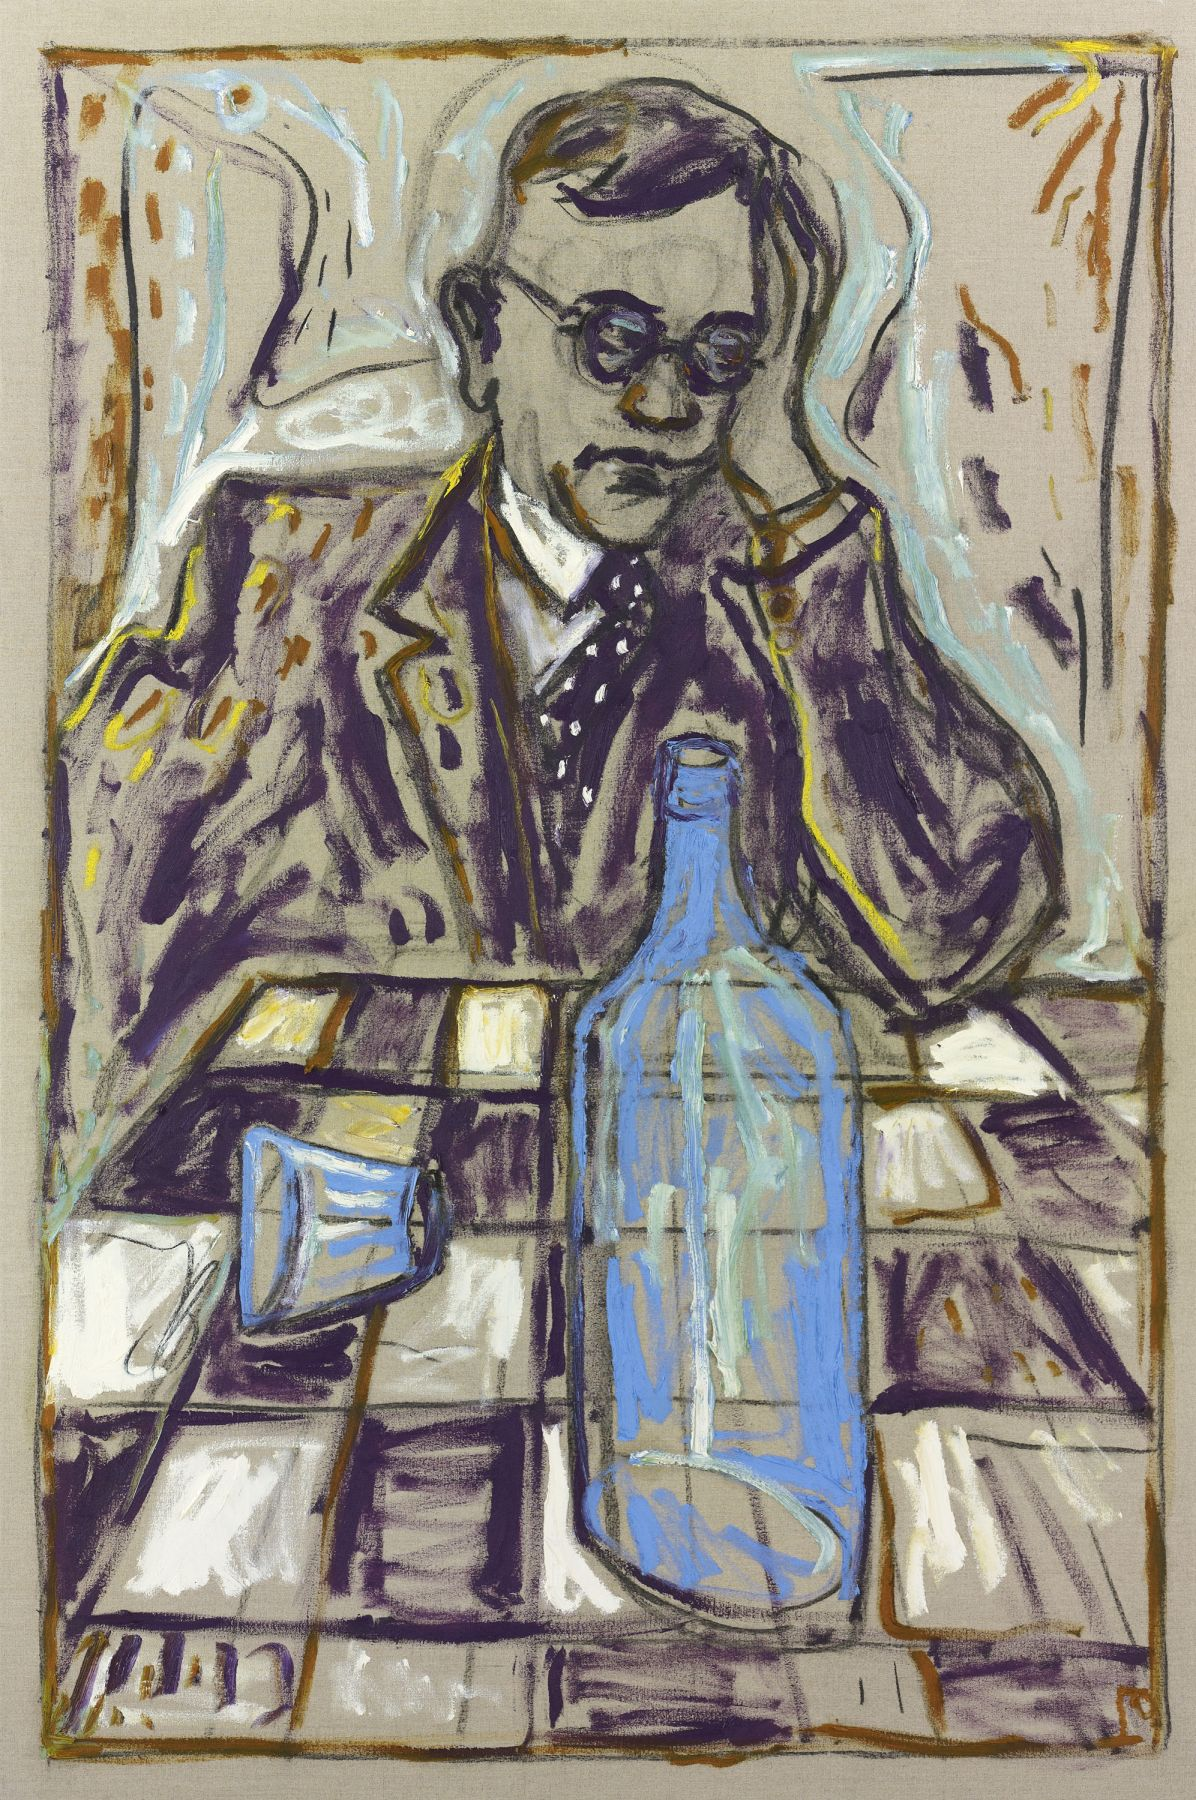 比利·æŸ¥çˆ¾è¿ªæ–¯ (Fallada) Man with Blue Bottle, 2010